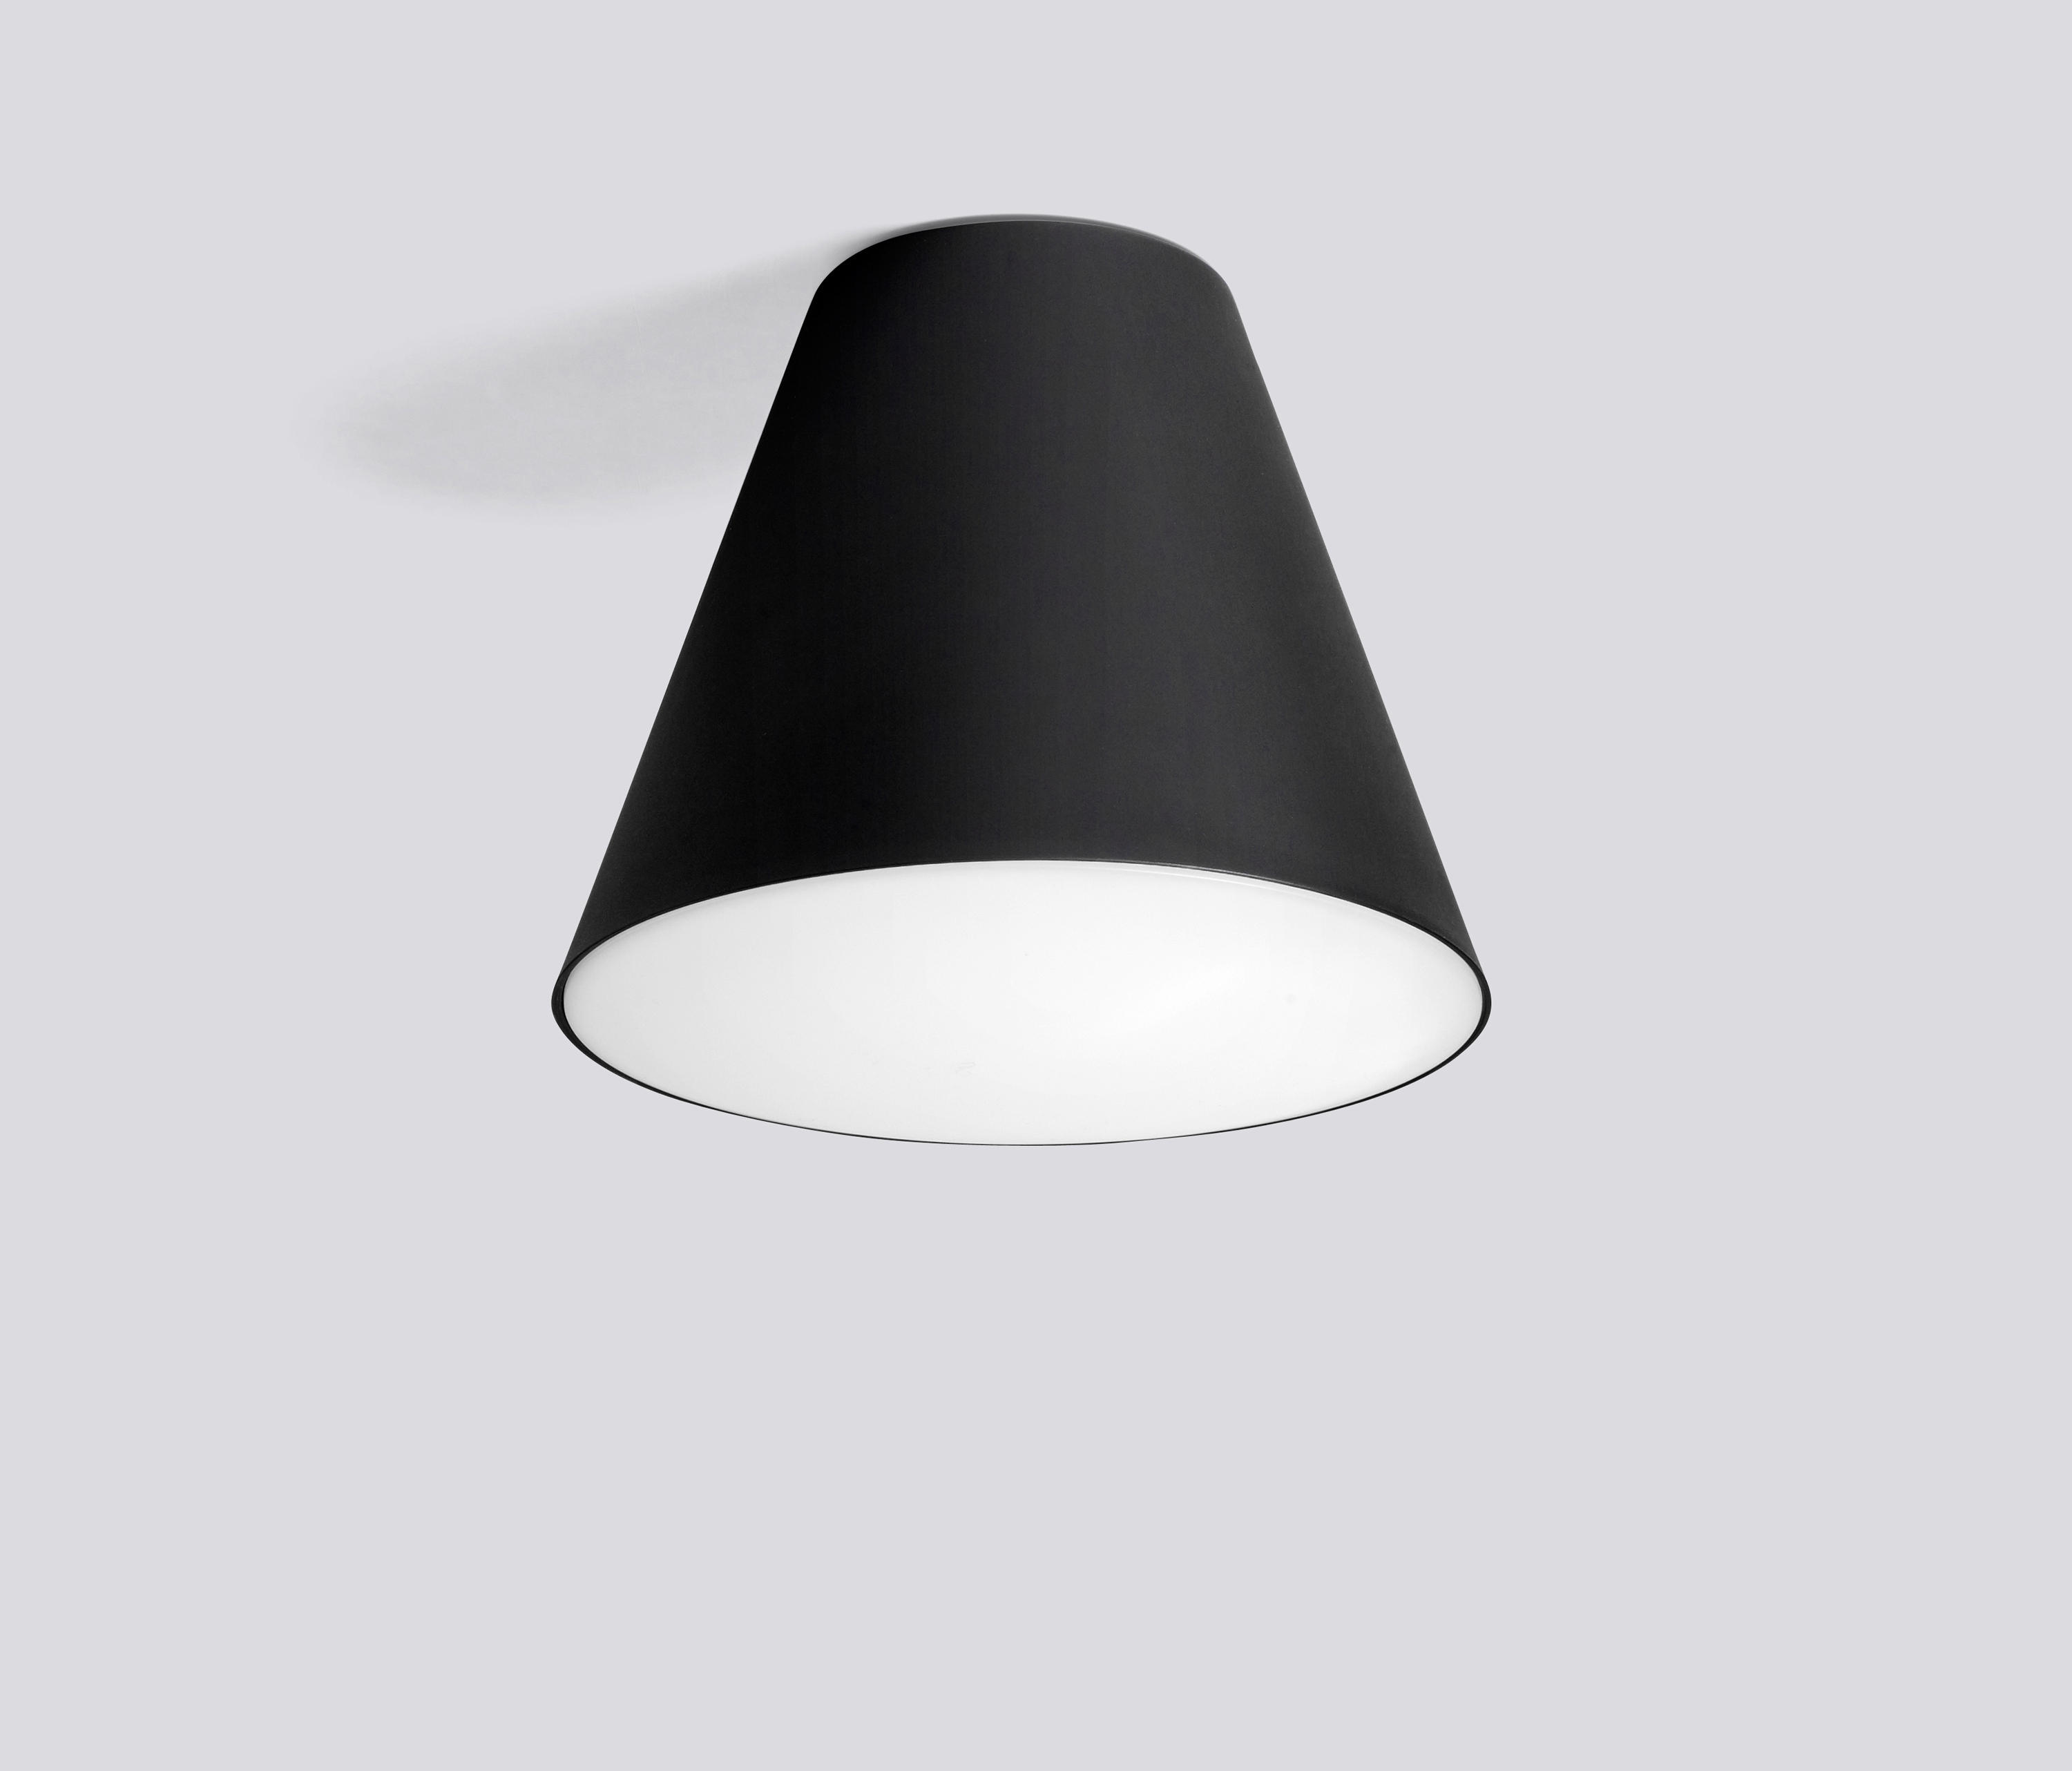 hay sinker ceiling light black的圖片搜尋結果